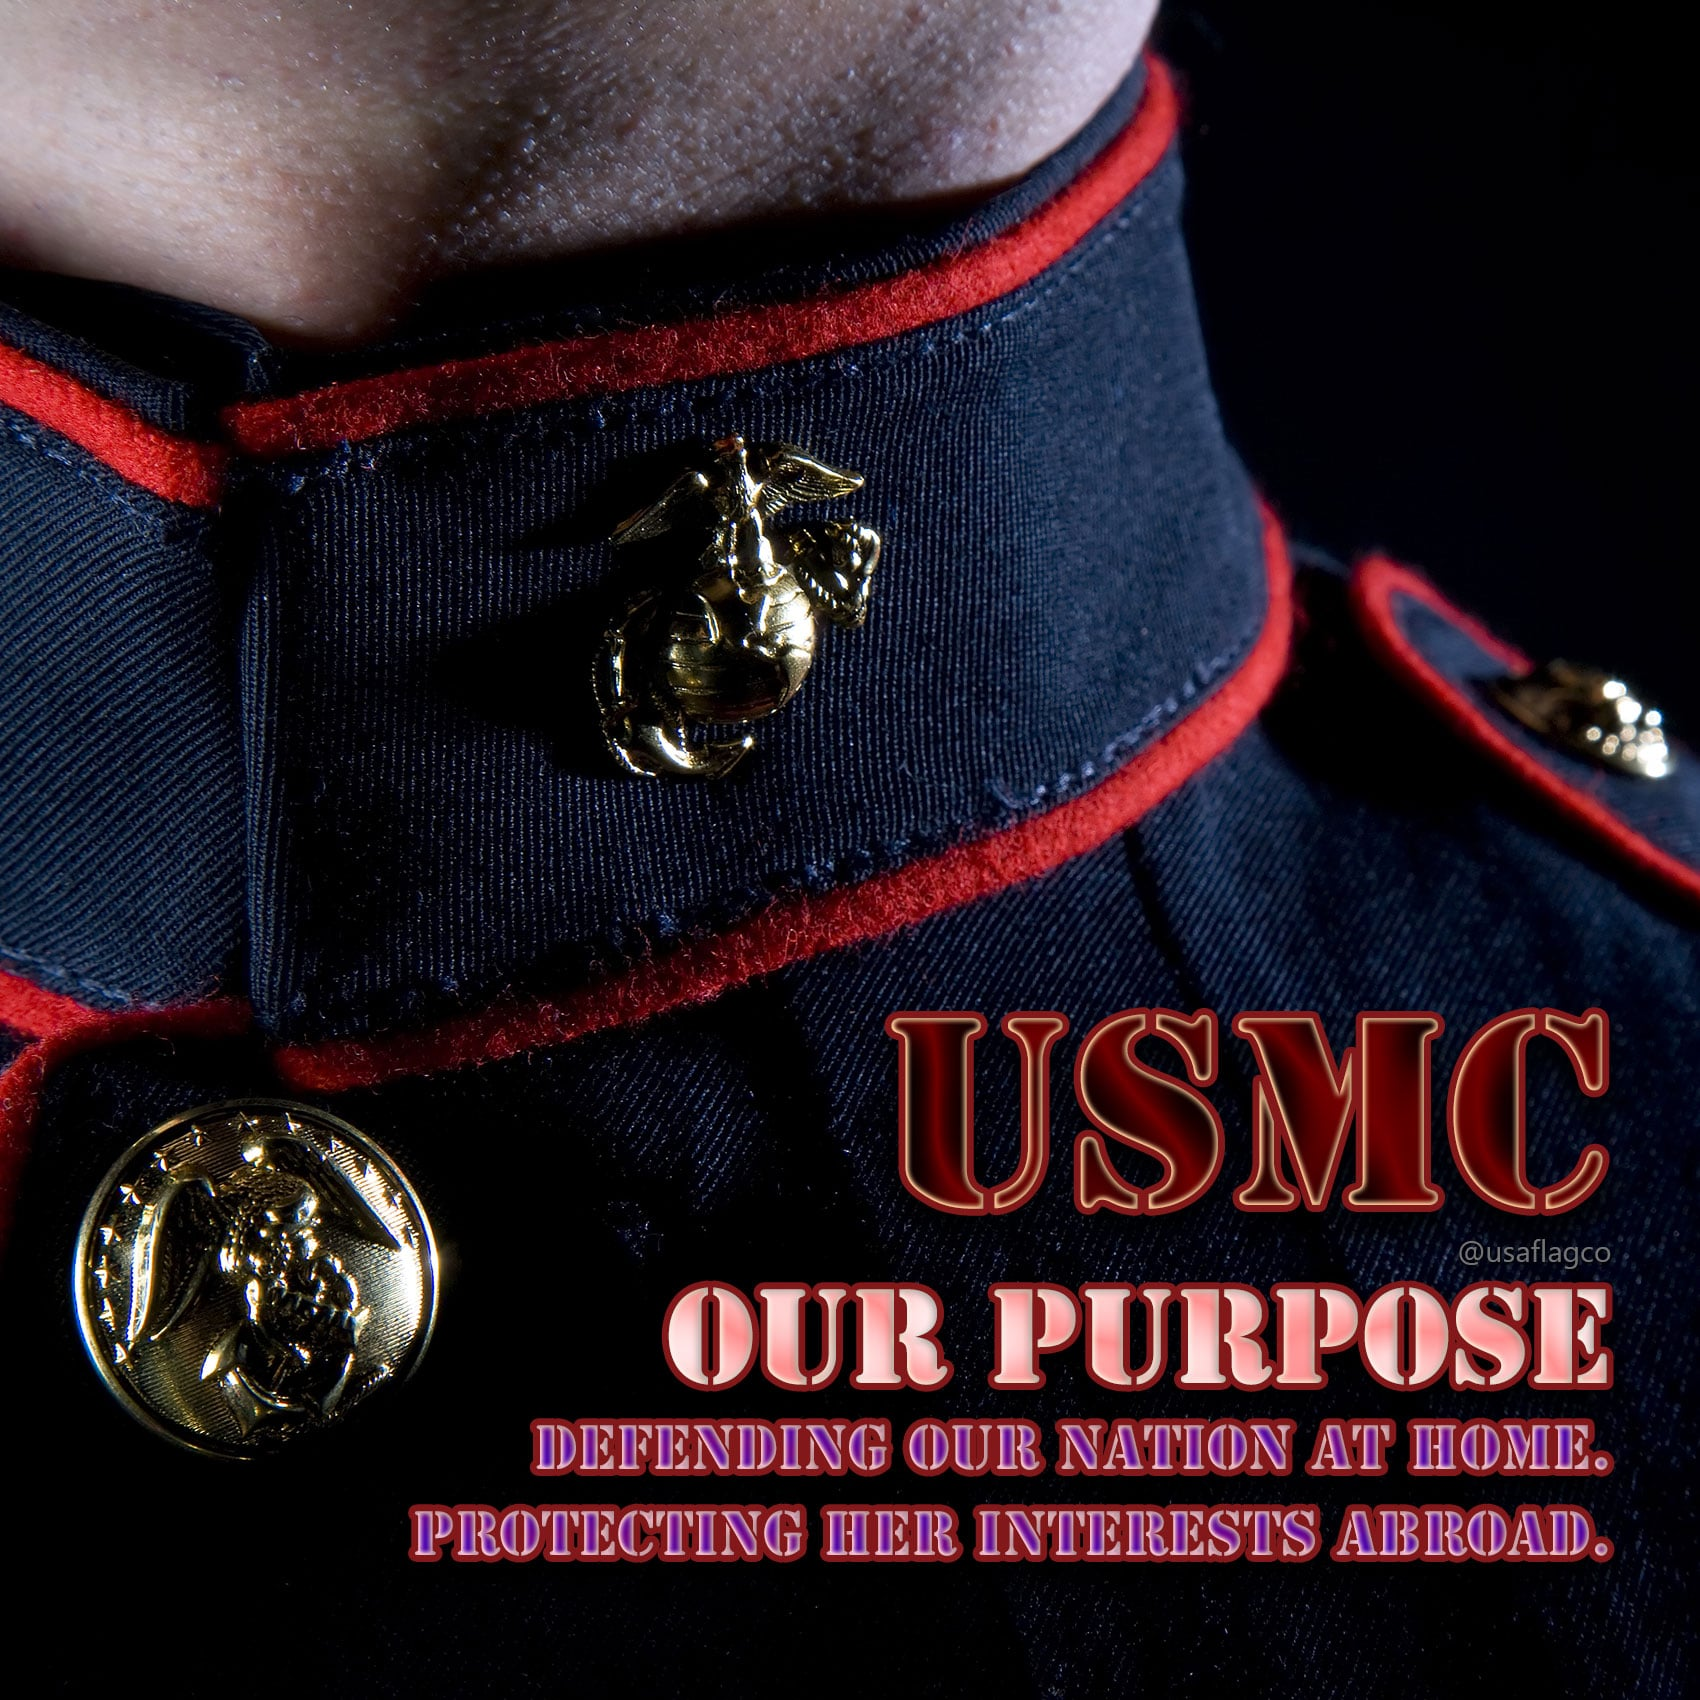 USMC: Our Purpose - Defending our nation at home. Protecting her interests abroad.